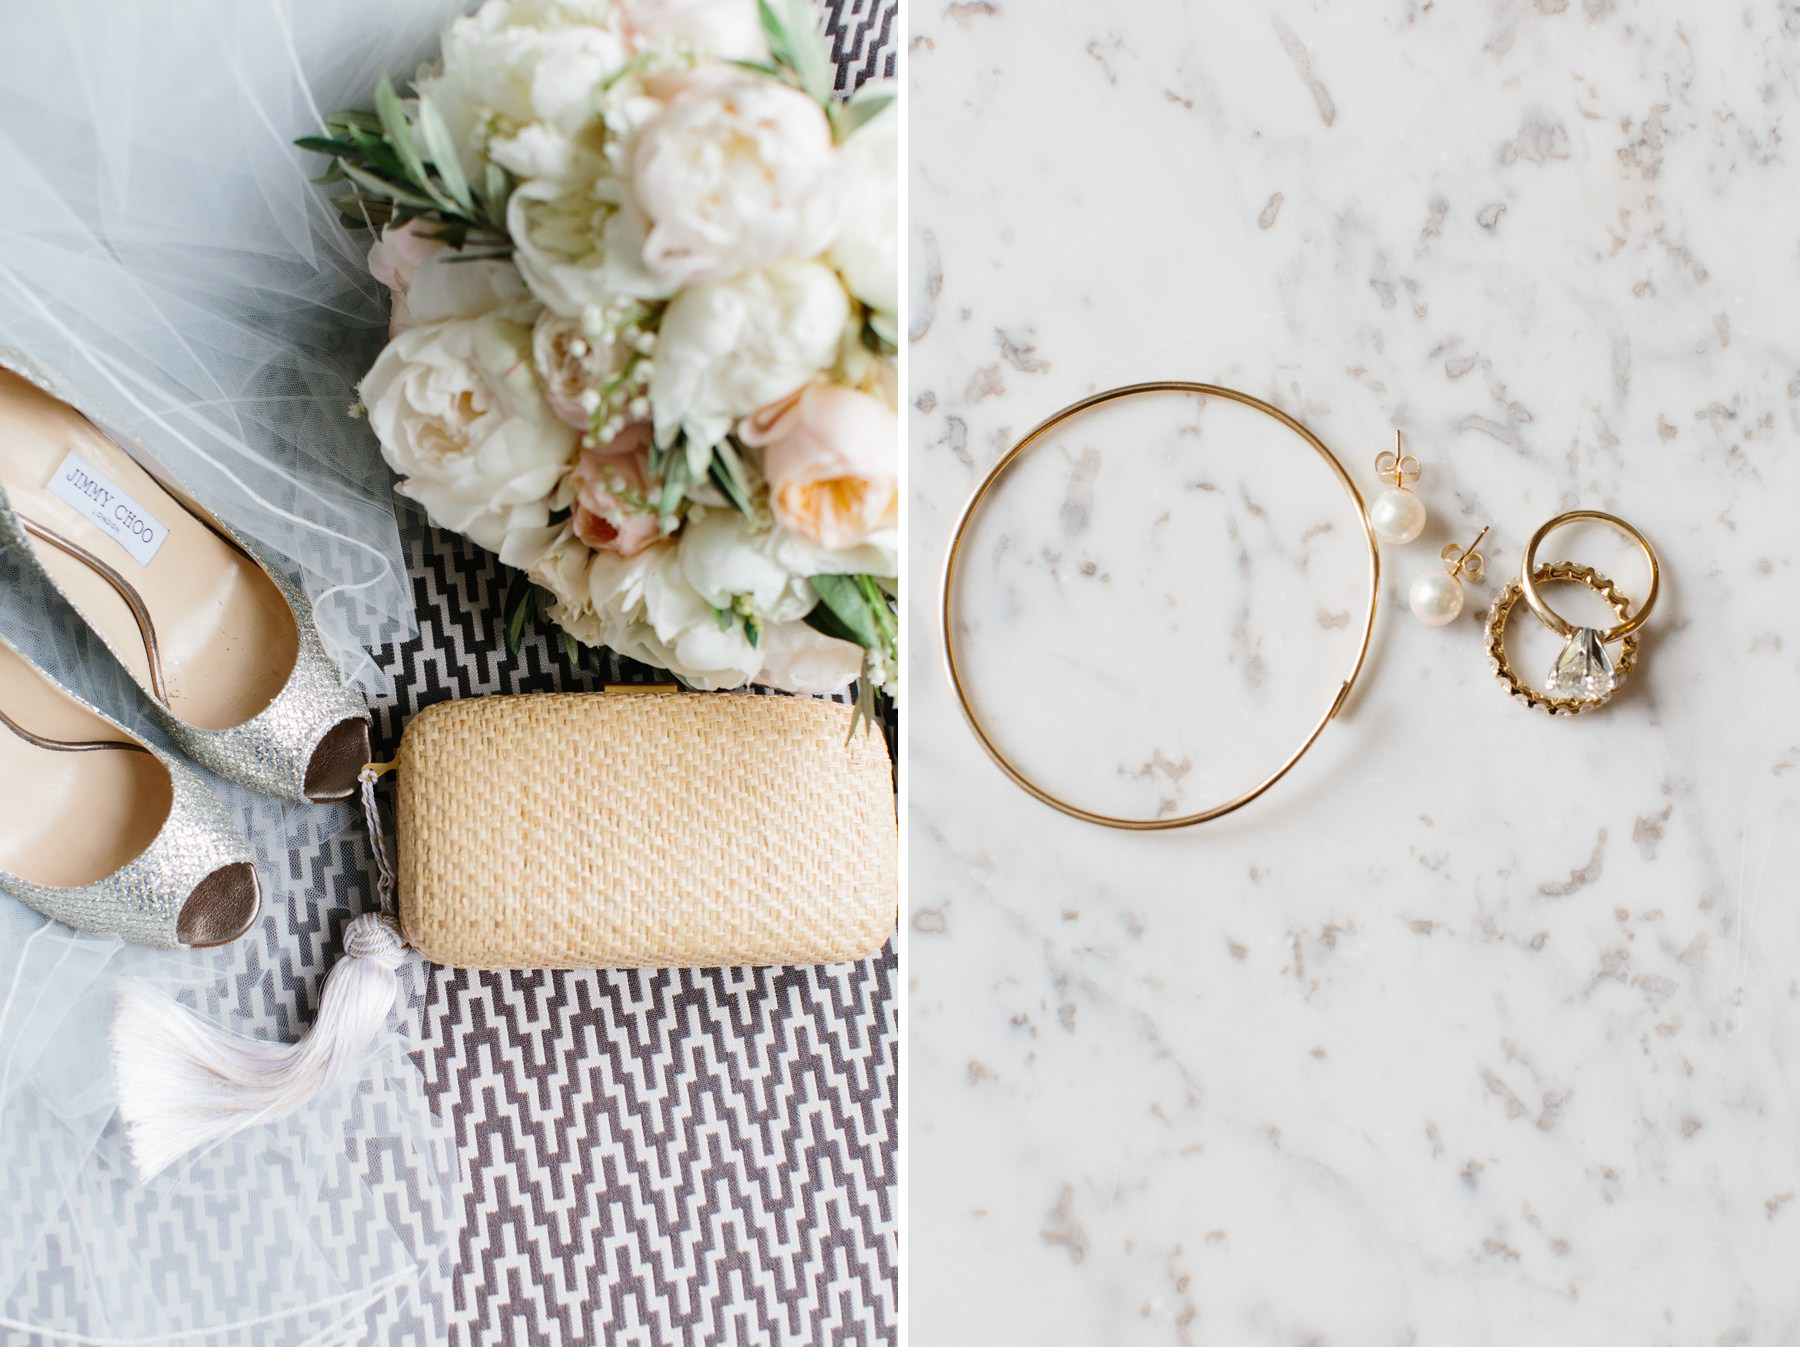 bridal details on marble